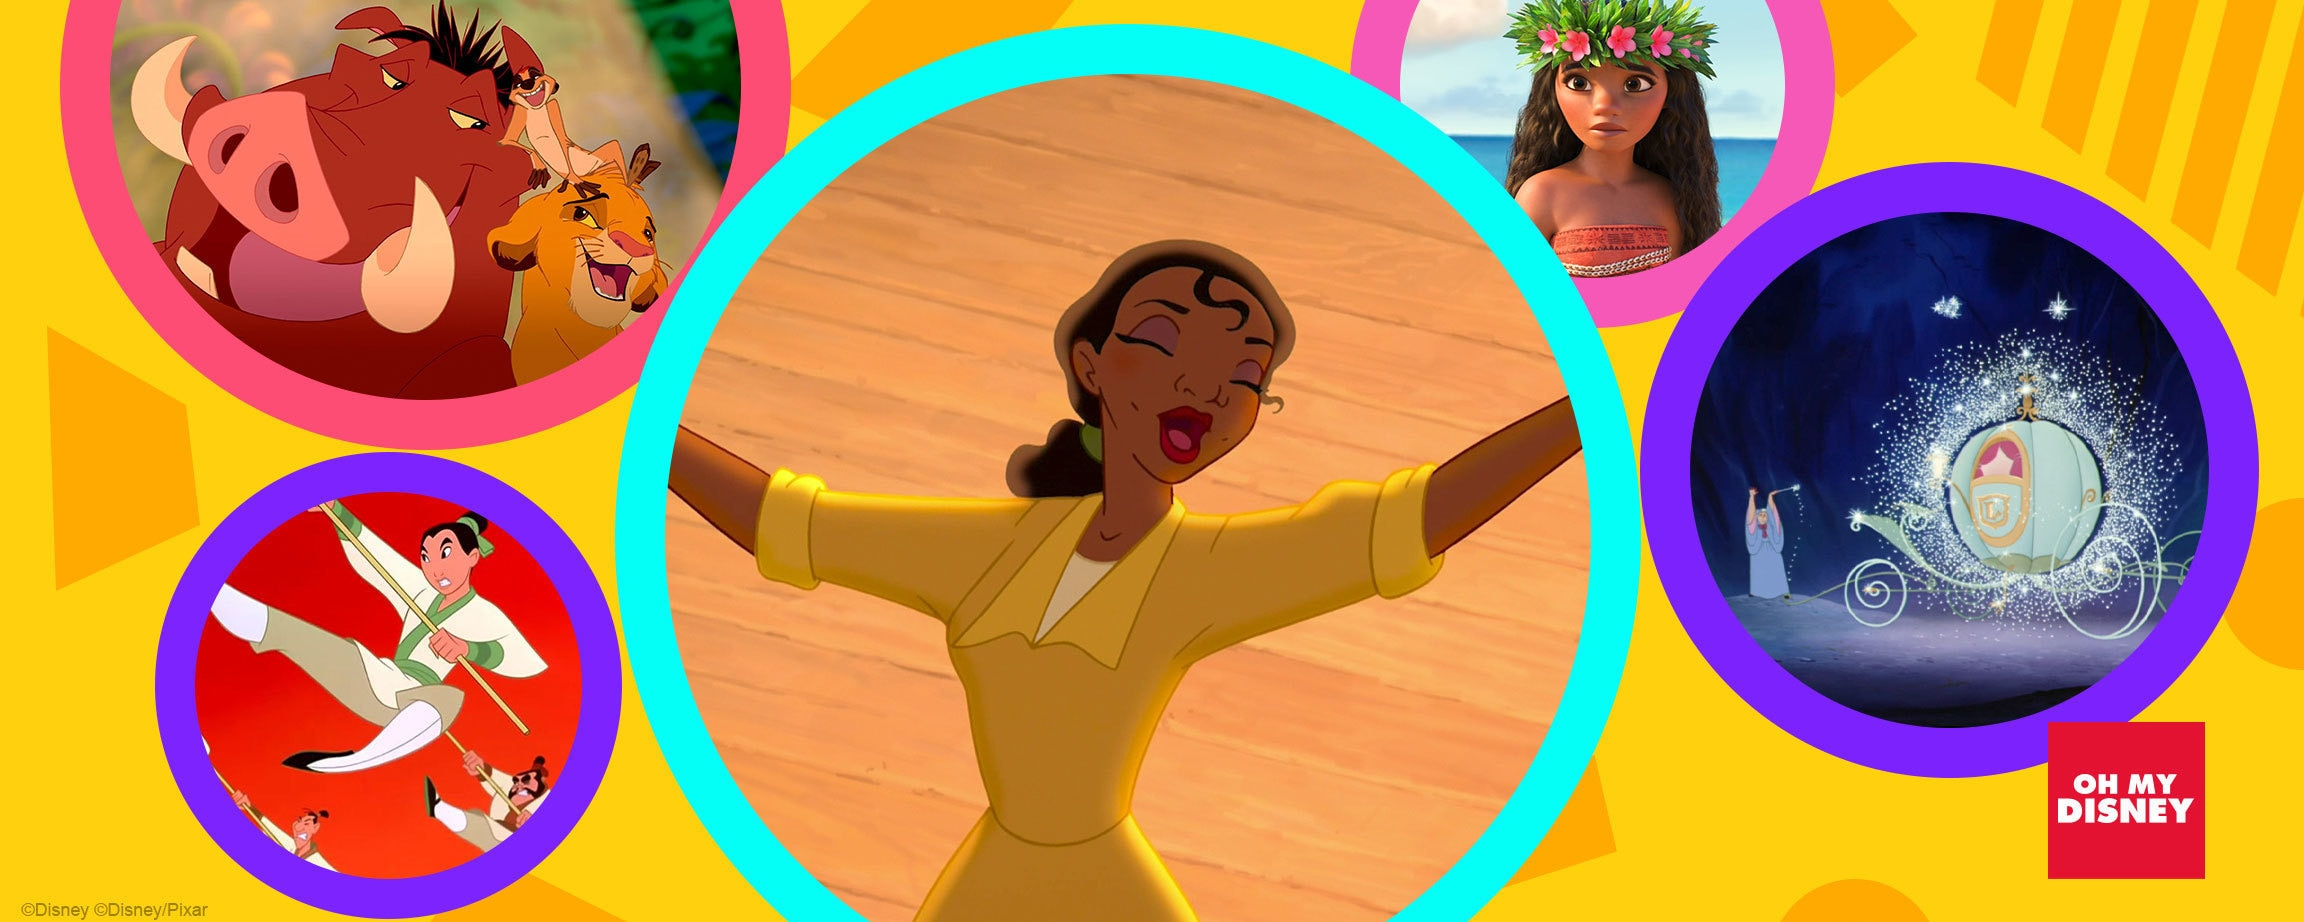 9 Disney Songs From The Spotify's Disney Hub